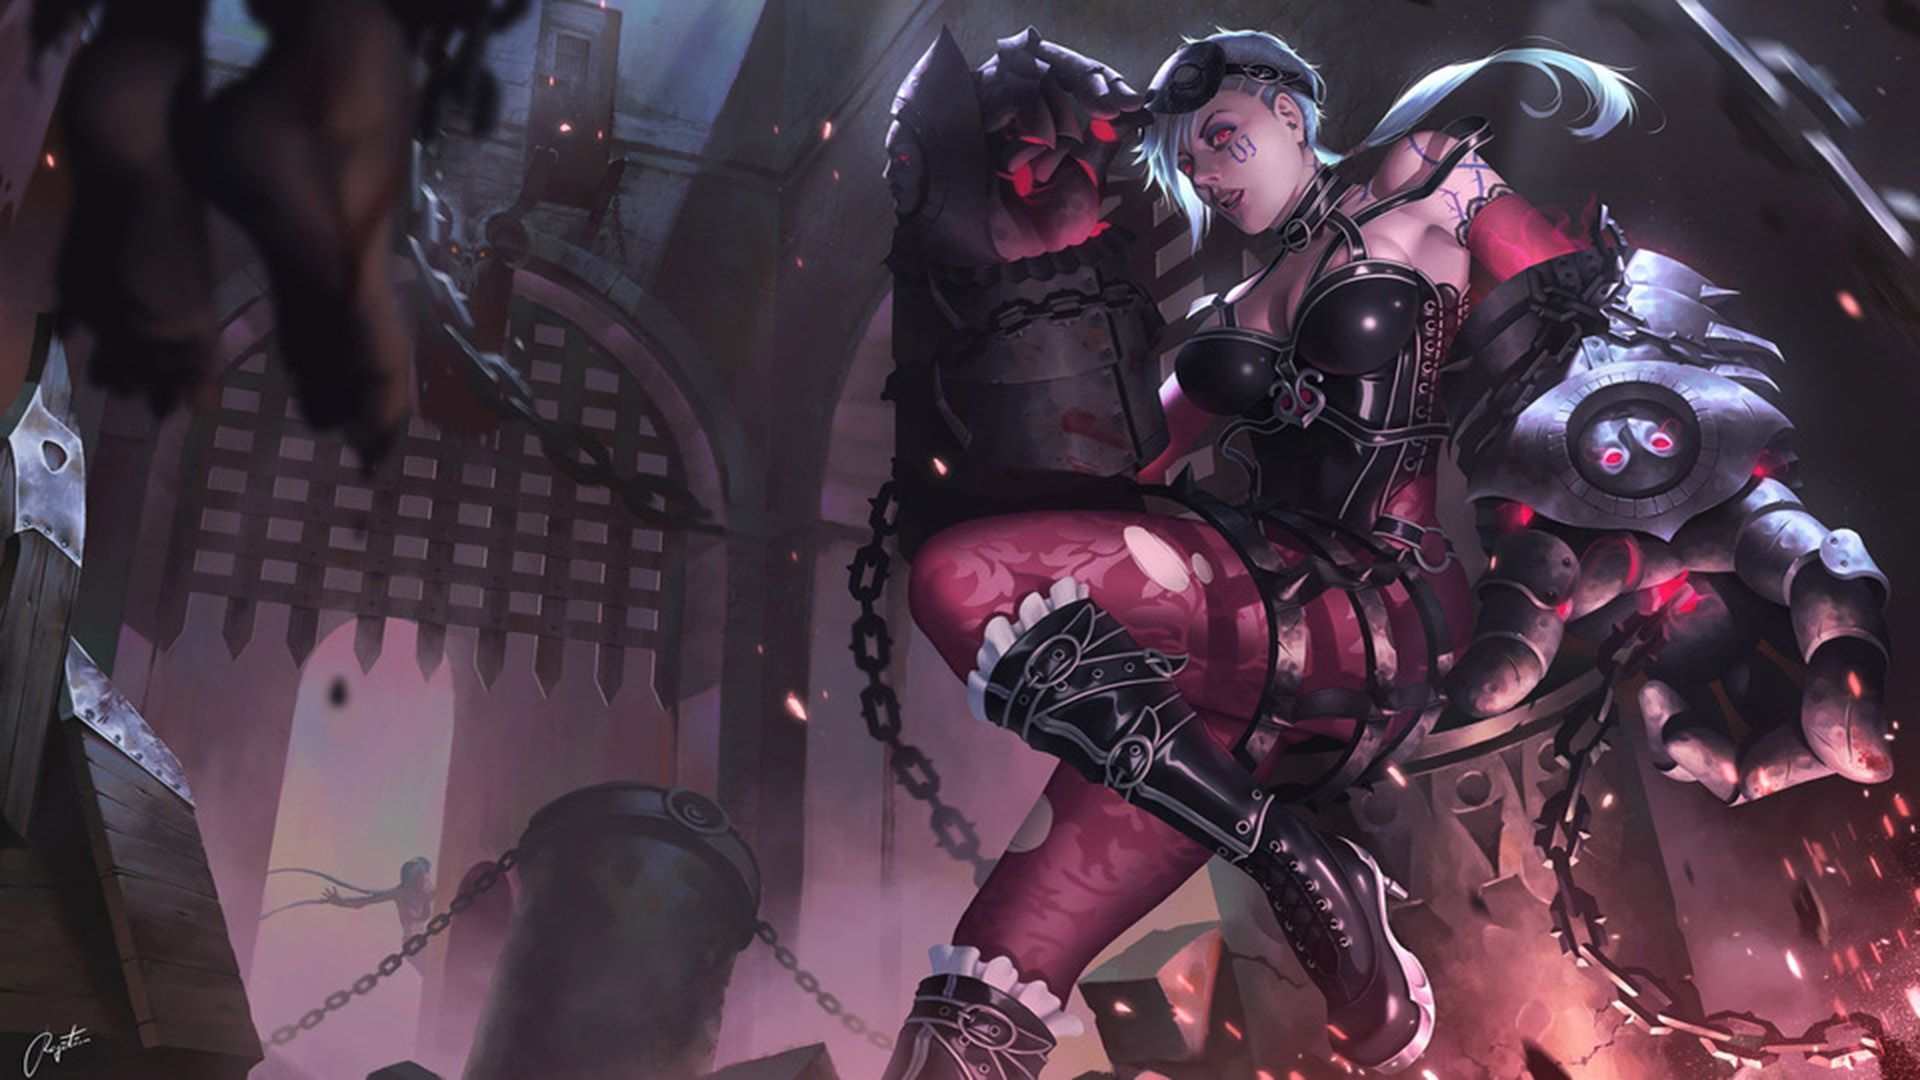 Gothic Vi Wallpaper Hd 1920x1080 League Of Legends Wallpapers Art Of Lol Vi League Of Legends Jinx League Of Legends Lol League Of Legends